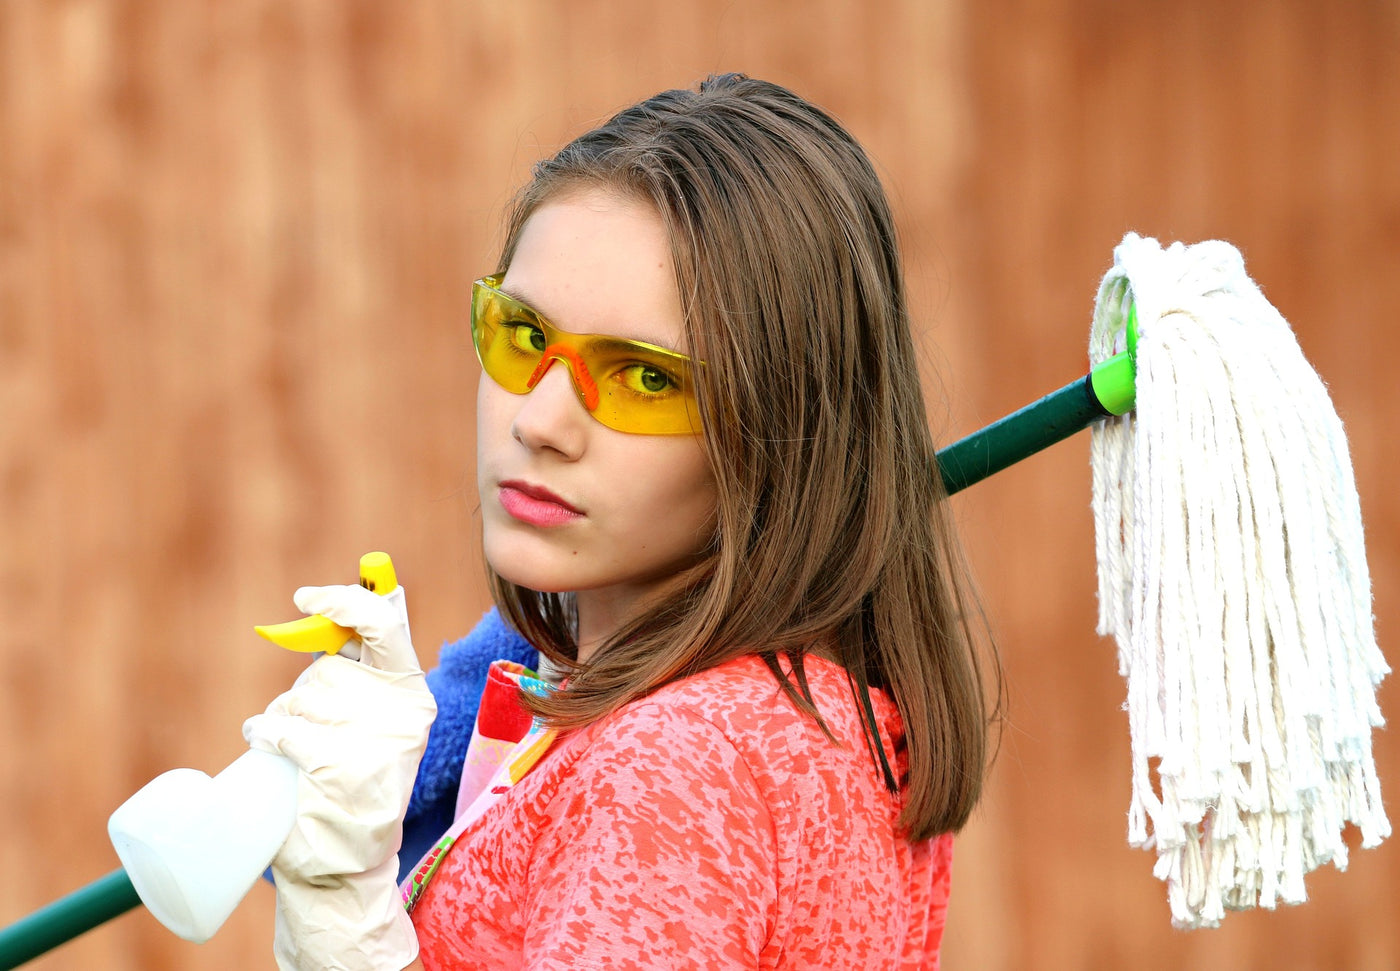 Girl with mop and cleaning fluid